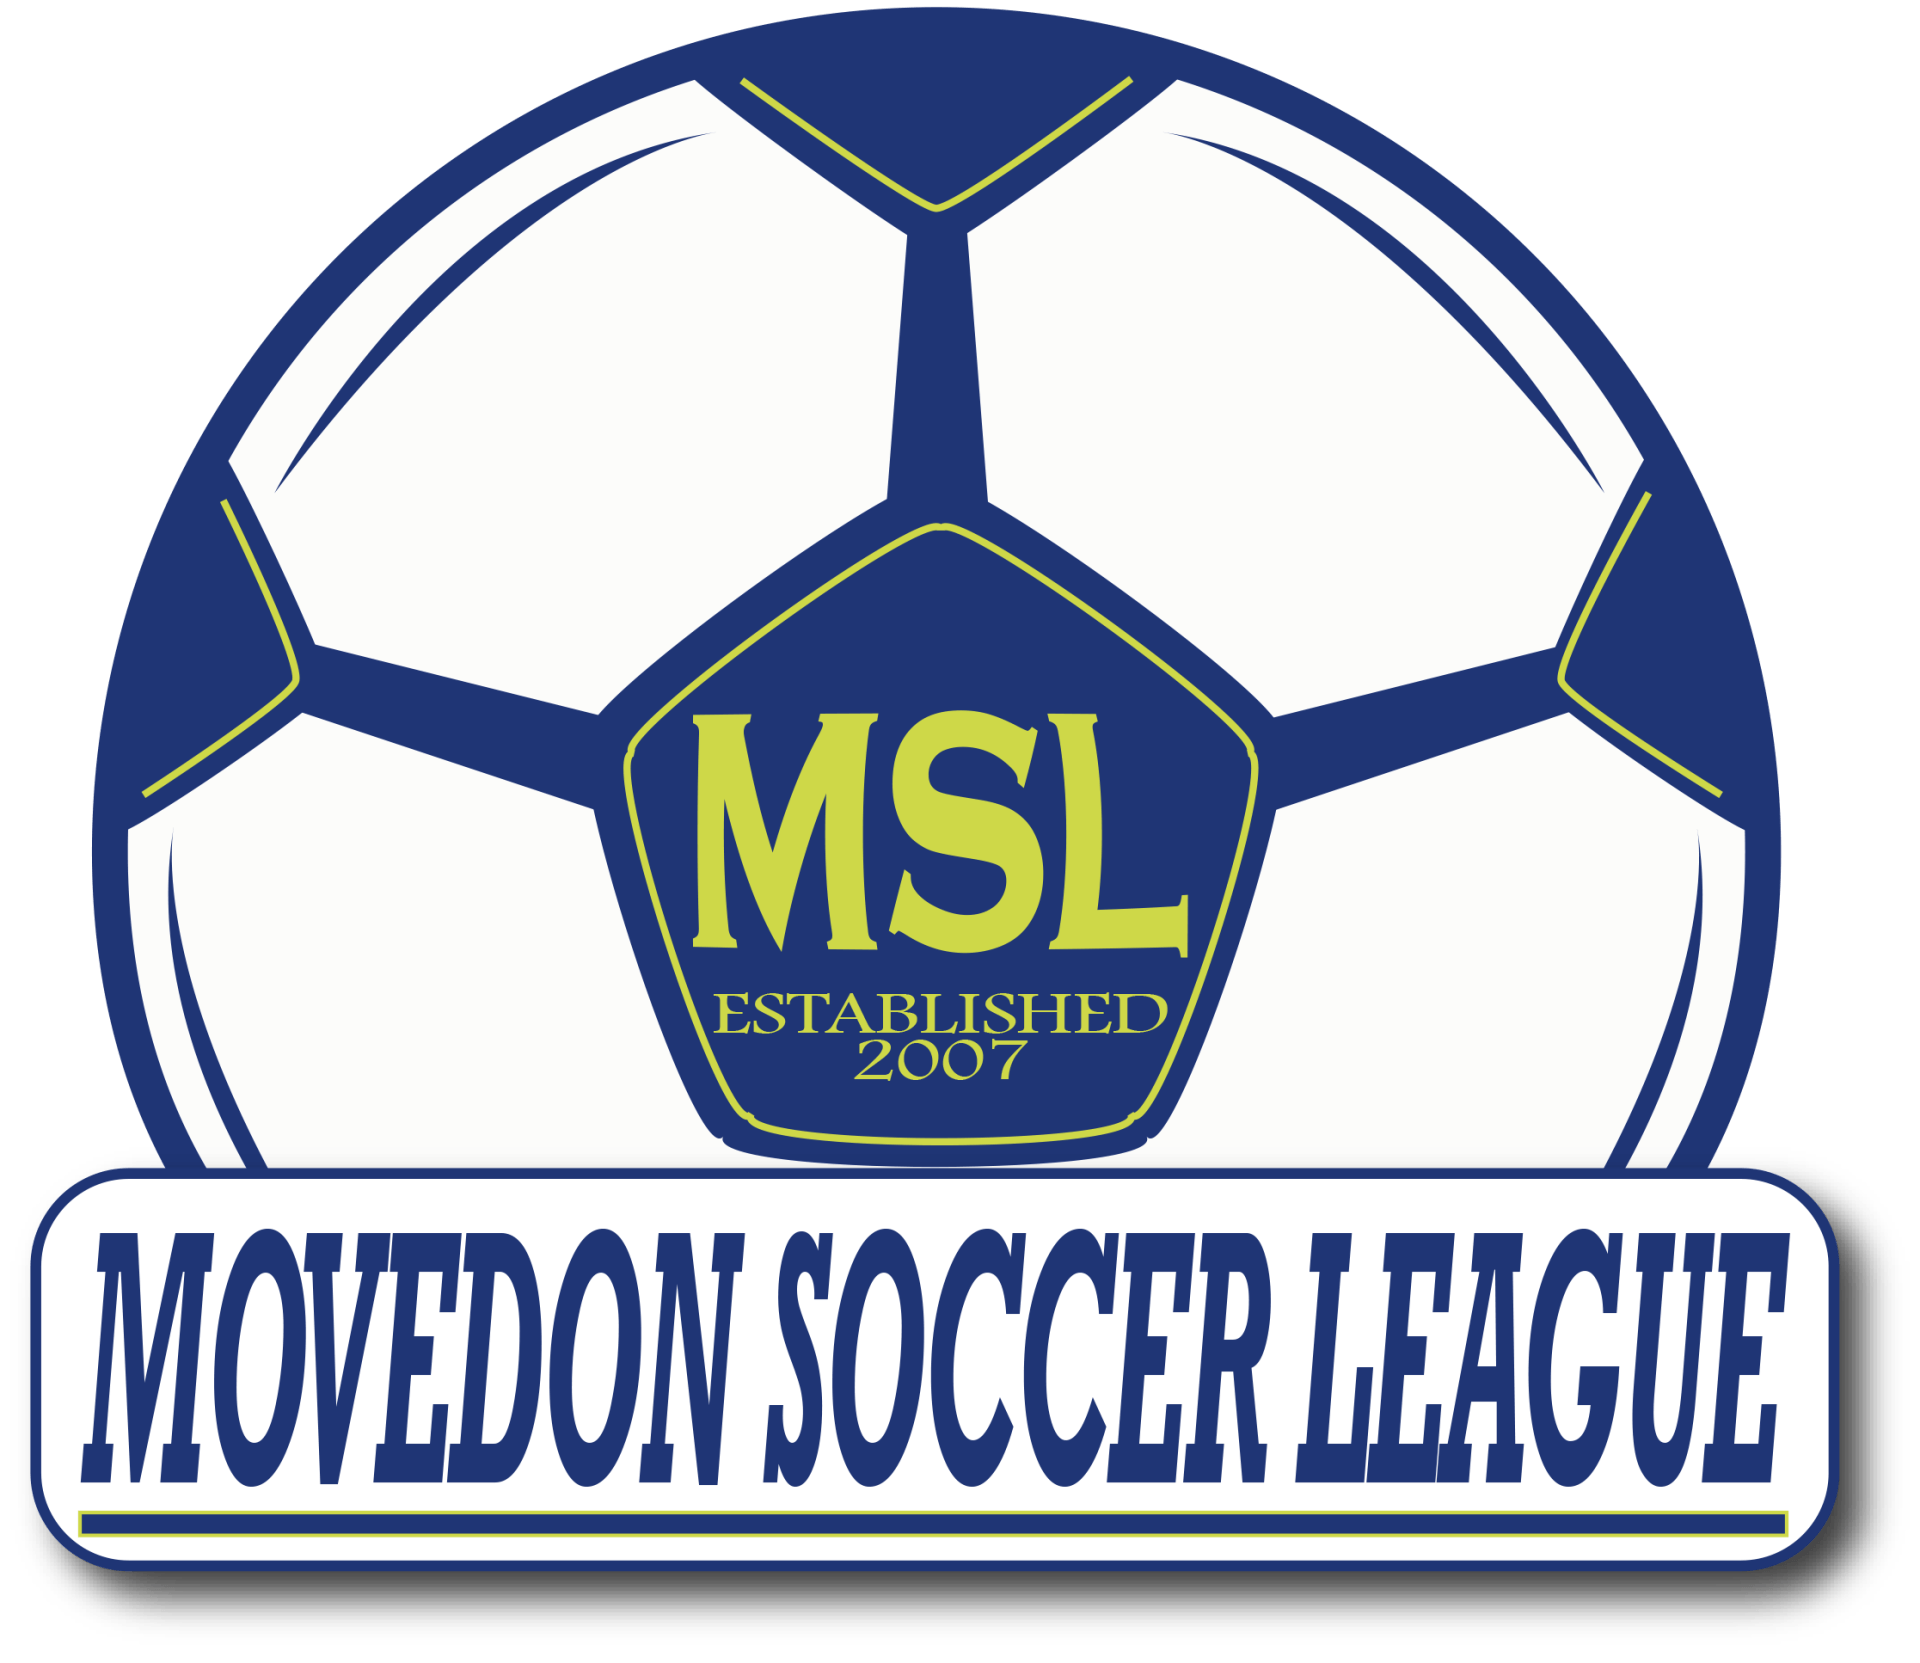 Field Locations - MoveDon Soccer League